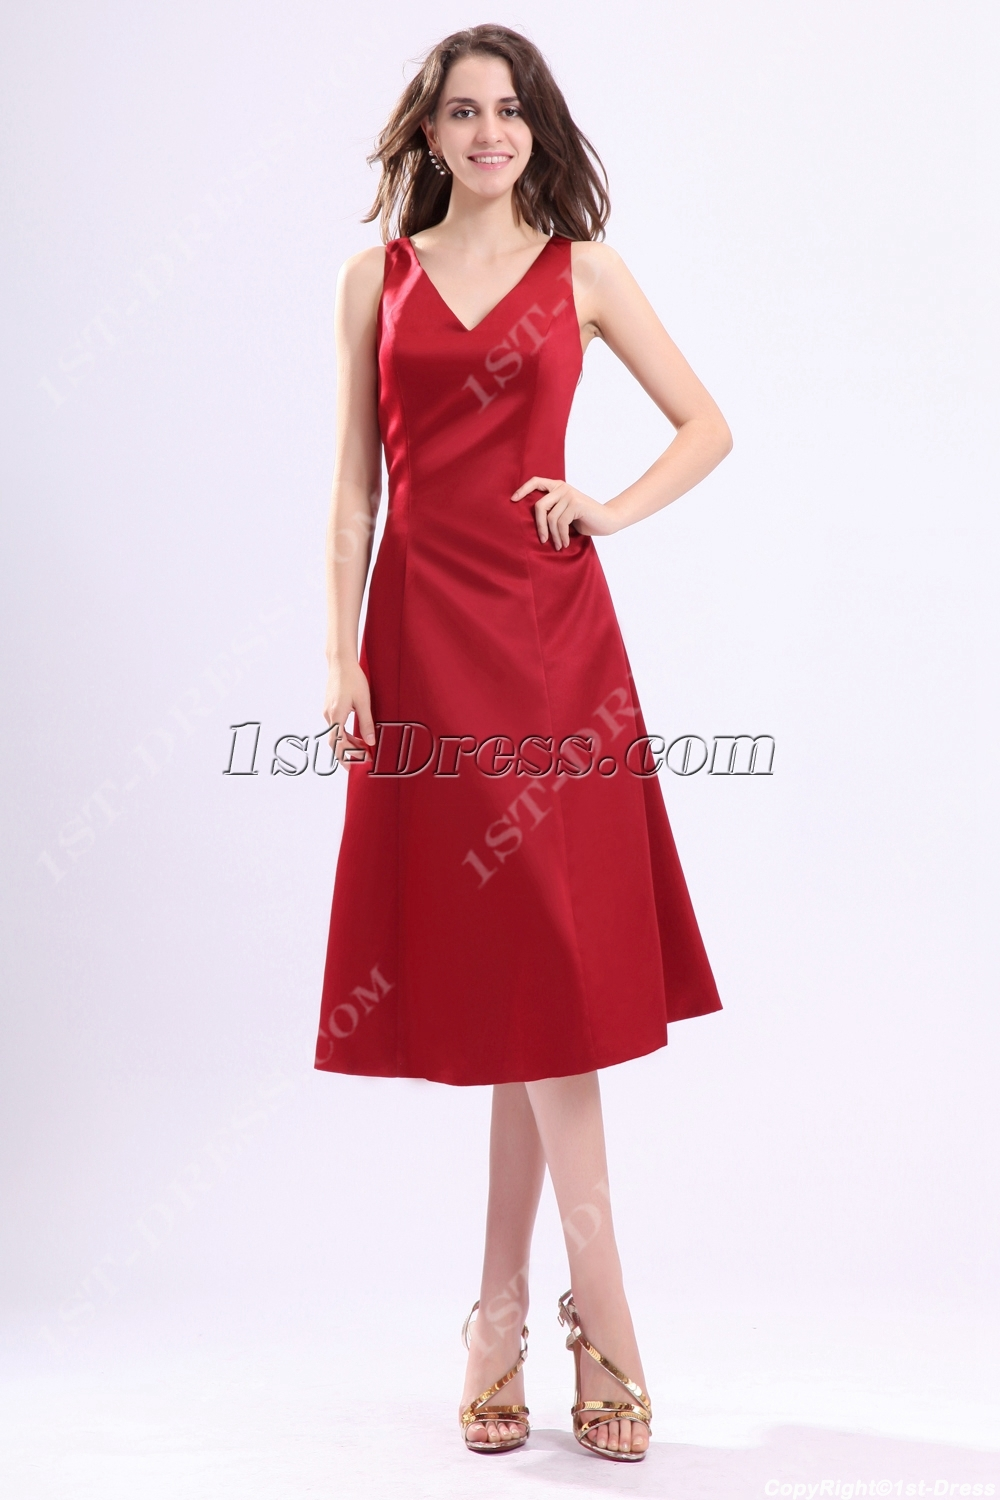 images/201311/big/Burgundy-V-neckline-Satin-Bridesmaid-Gown-under-100-3516-b-1-1384426111.jpg